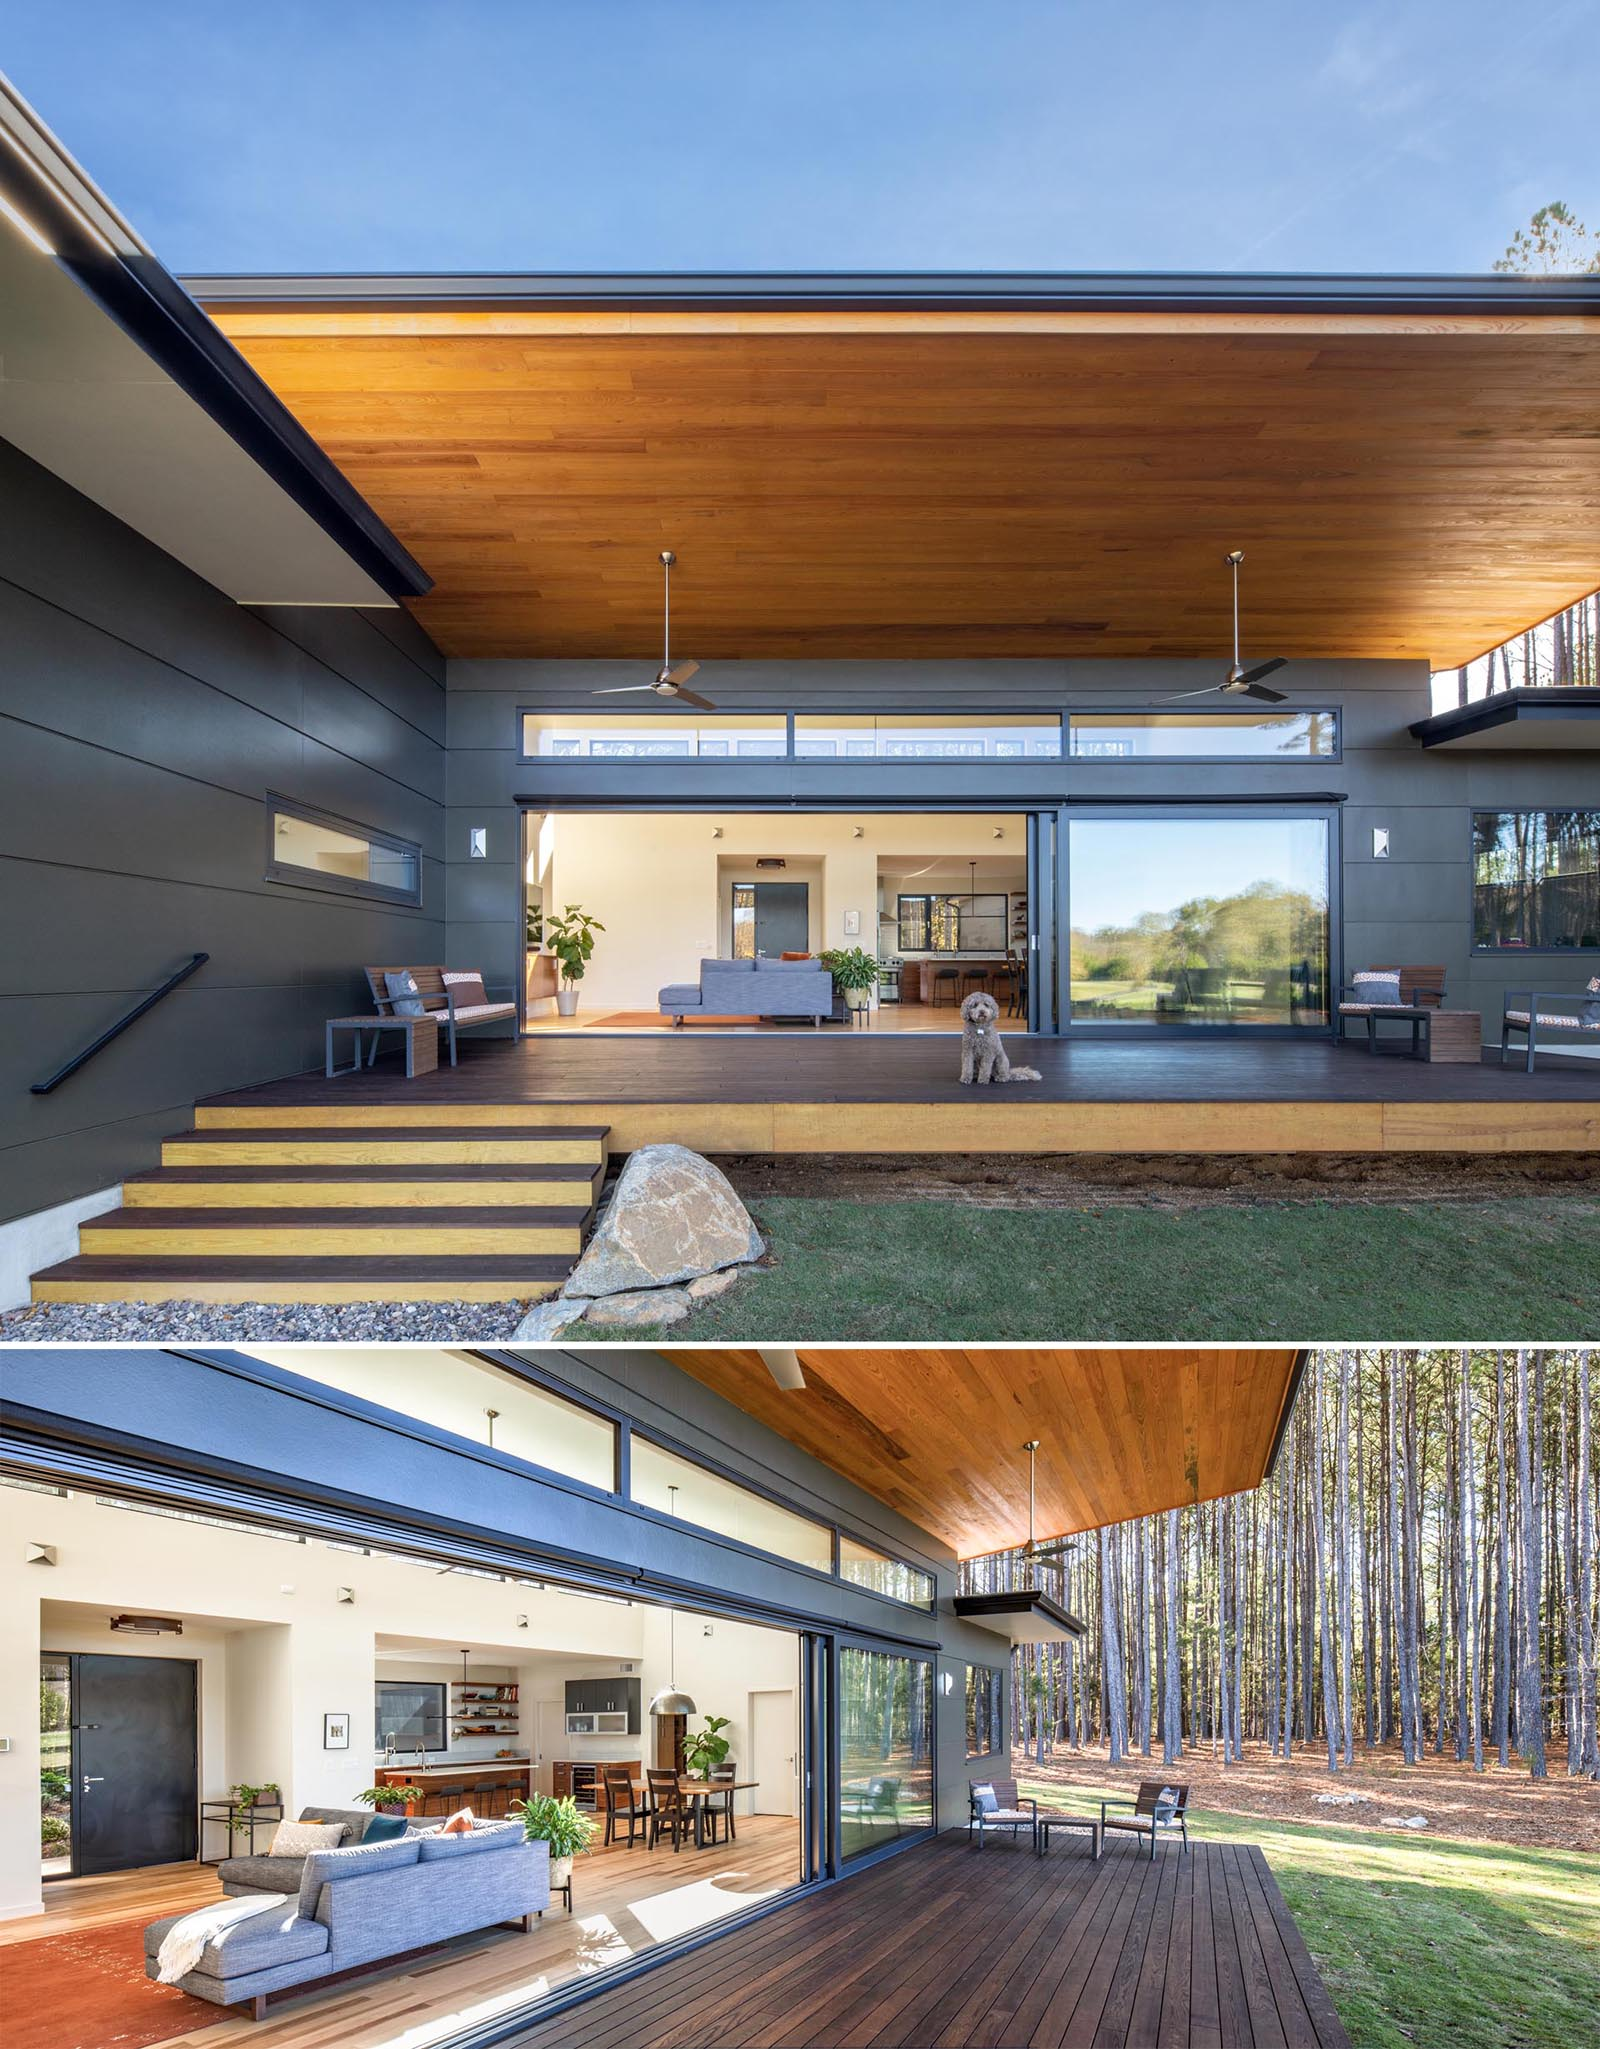 Operable glass doors (built to passive house standards for energy efficiency) were included in this modern home design to connect the interior spaces to the outdoors.